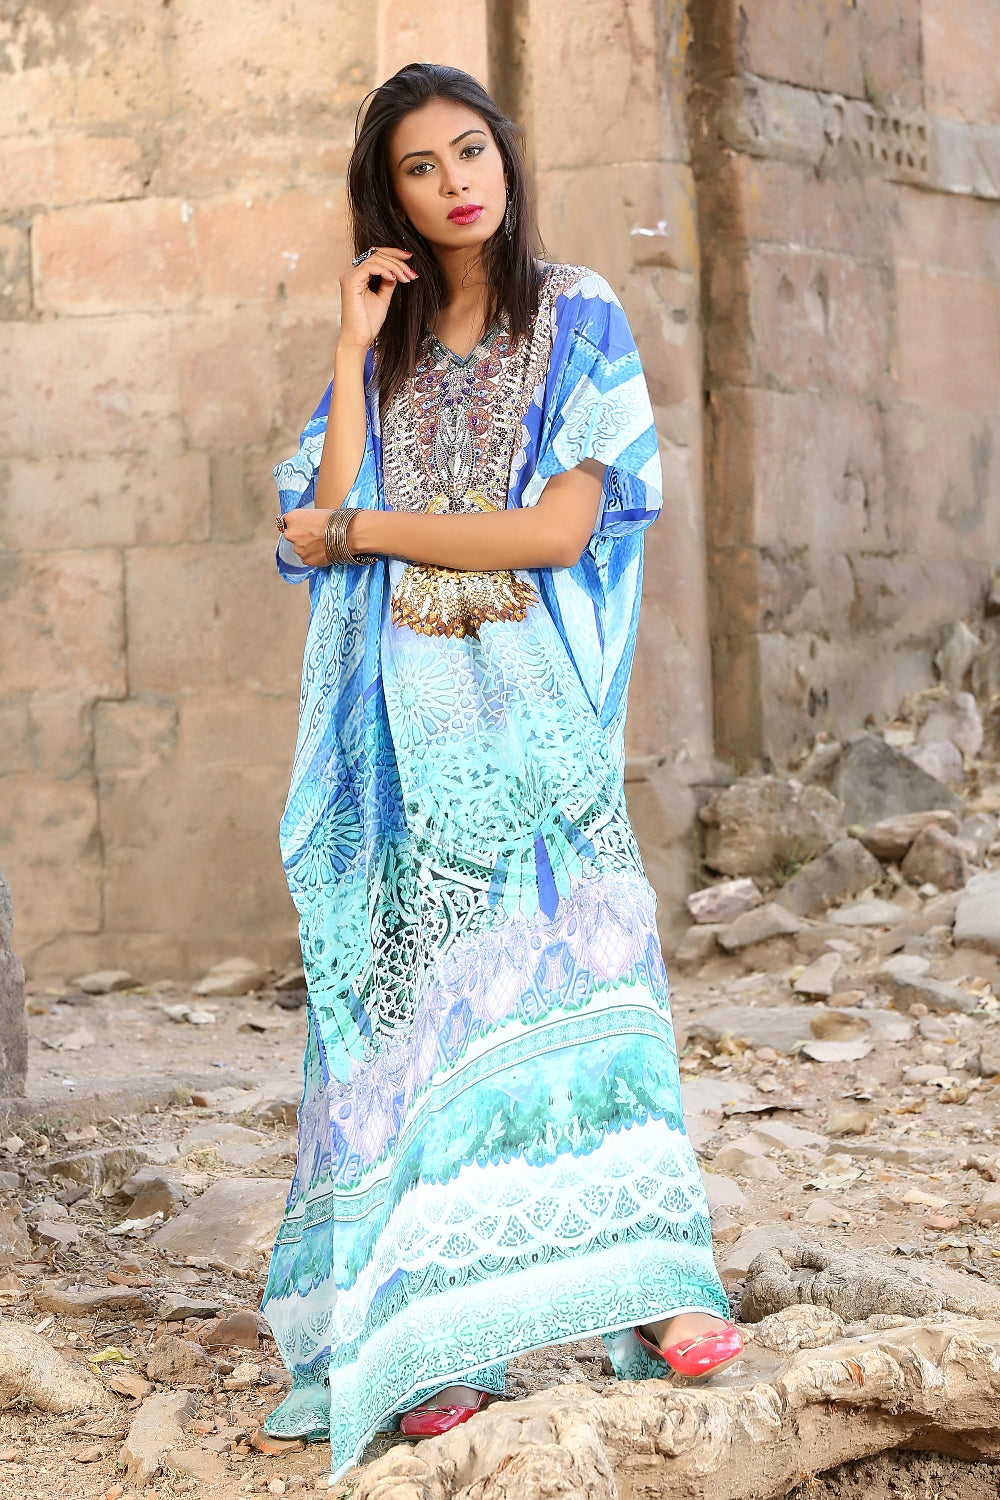 Feel the Seashore with enthusiastic Tropical Paradise printed Silk Long Kaftan - Silk kaftan